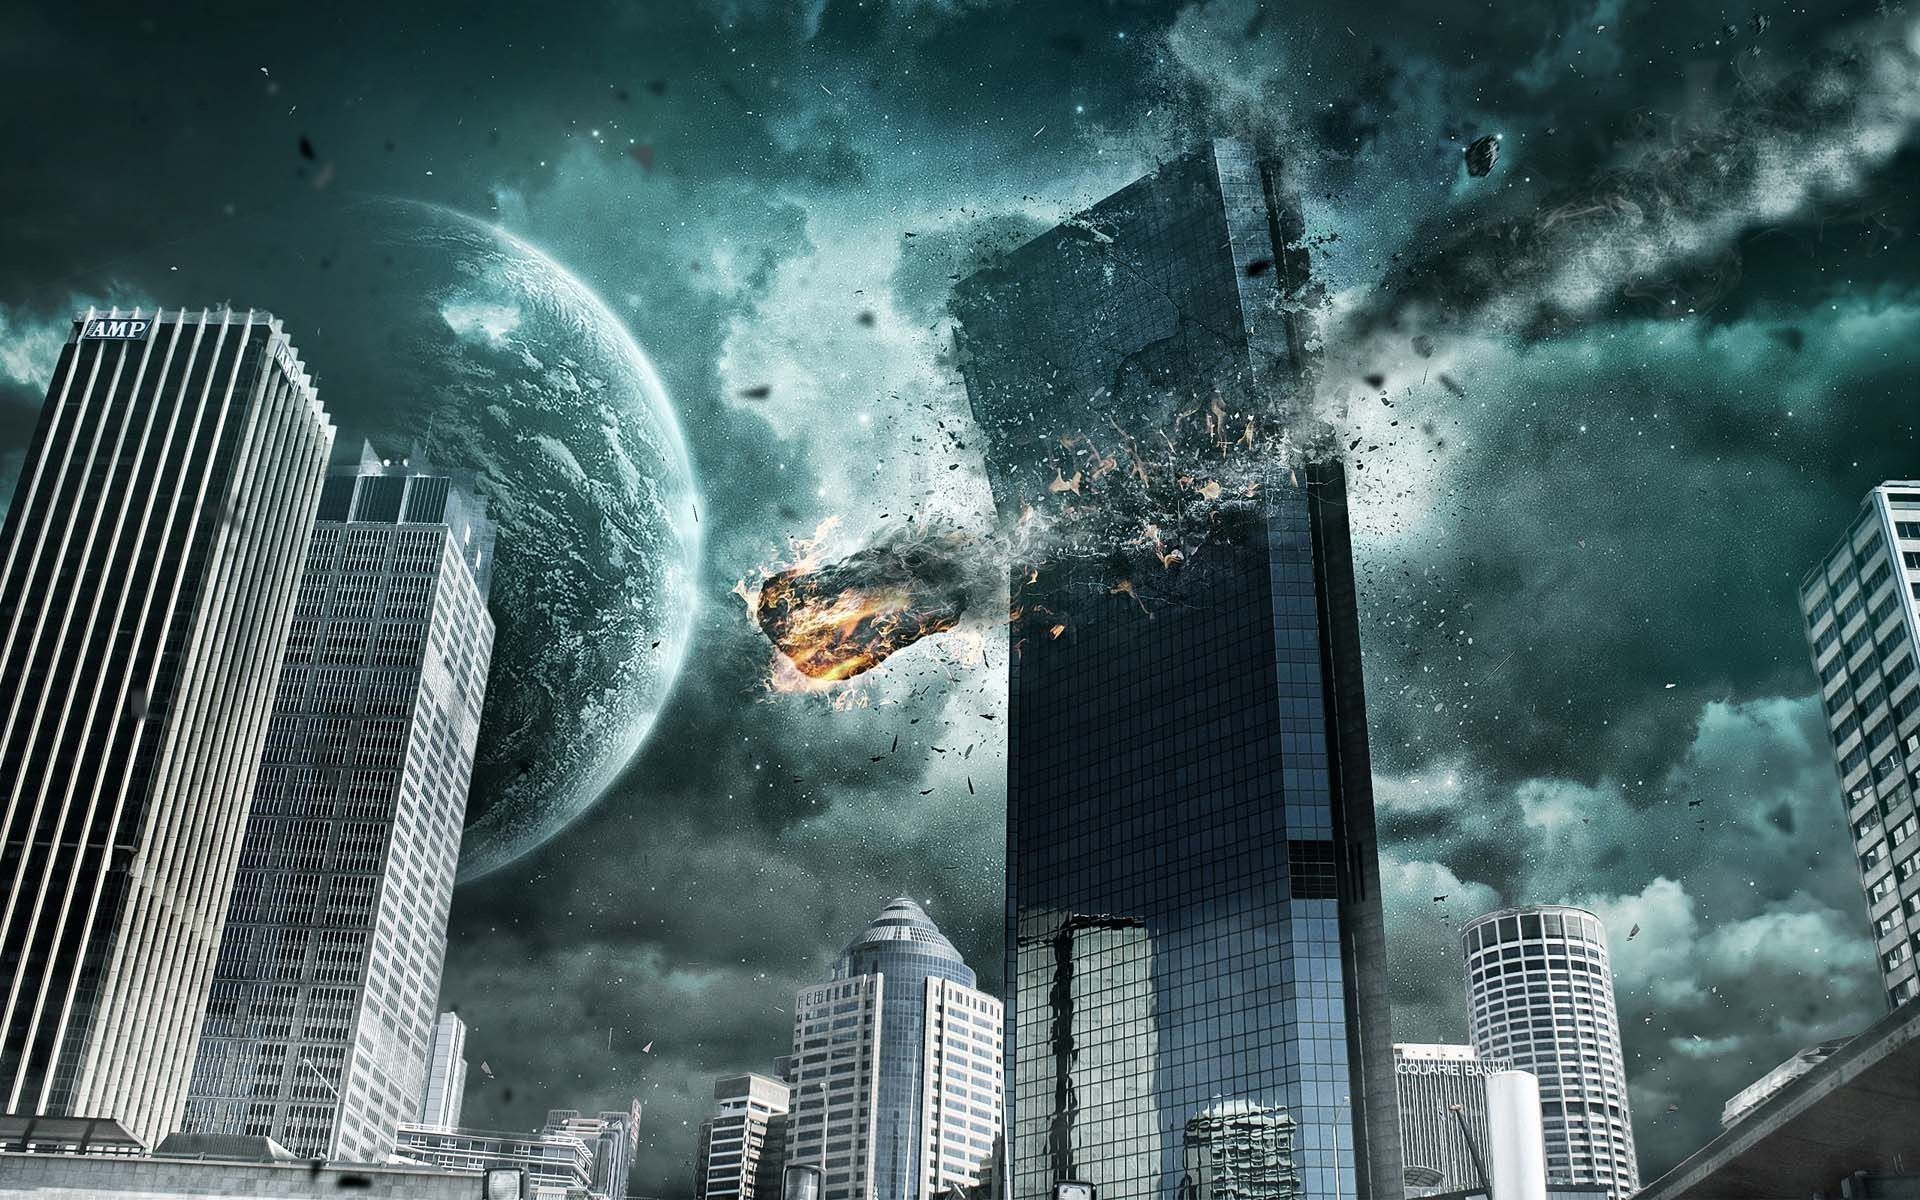 1920x1200 city destroyed by aliens 4k ultra hd backgrounds wallpaper 1920x1200 city destroyed by aliens 4k ultra hd backgrounds wallpaper voltagebd